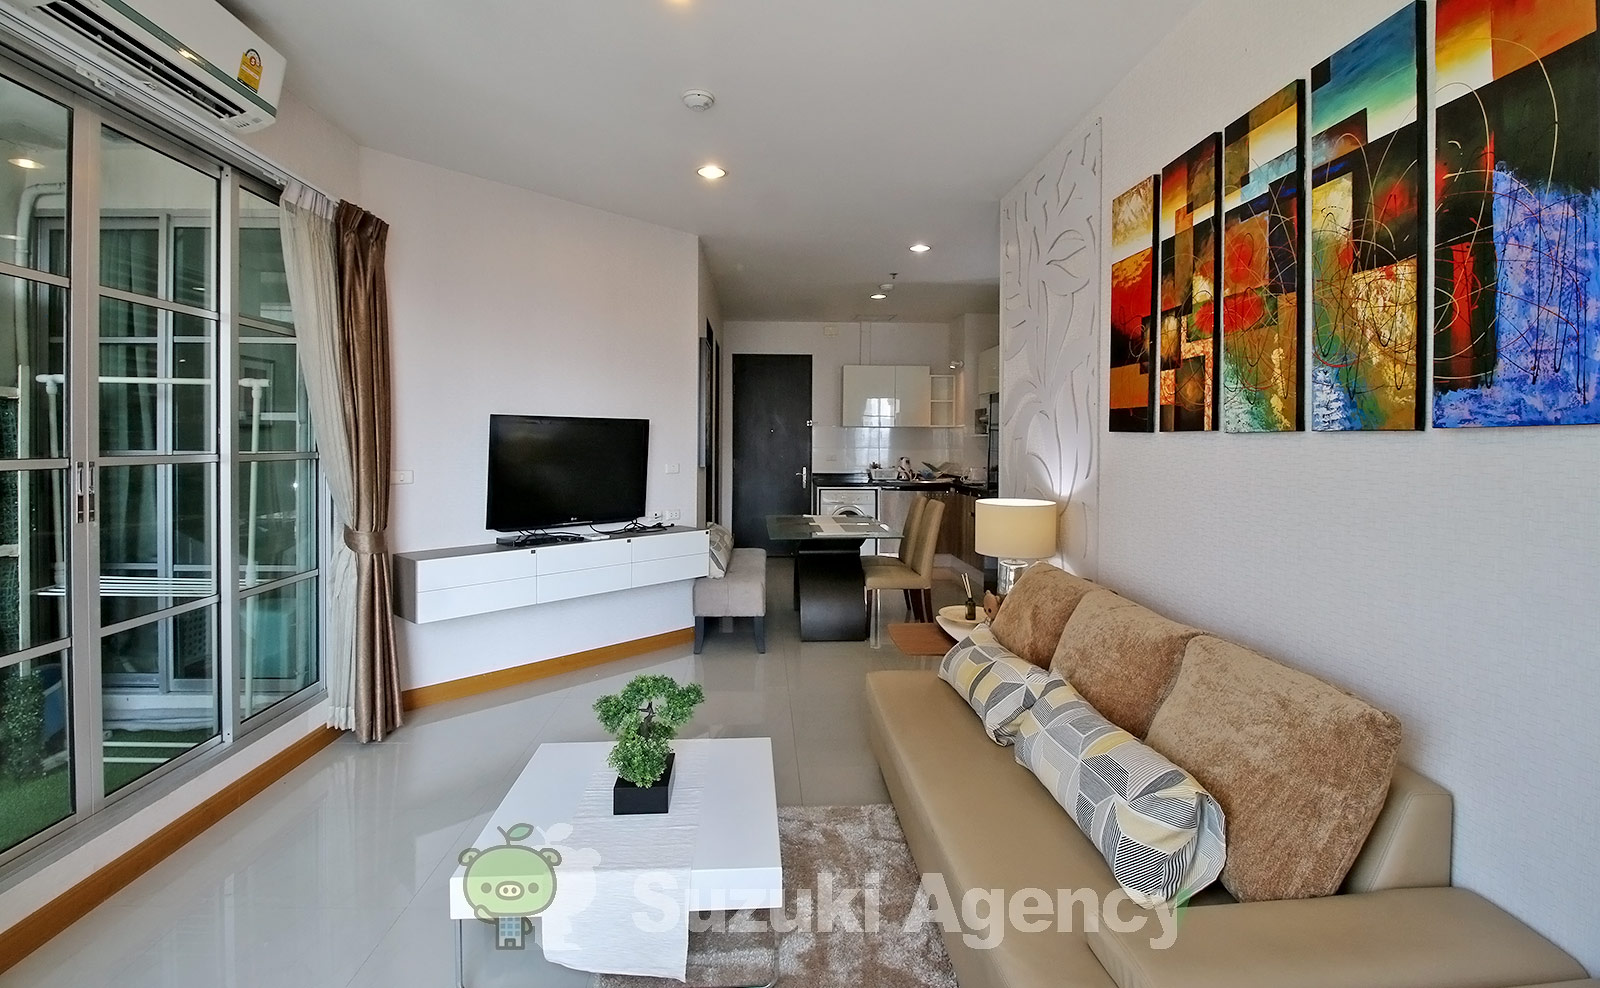 Citi Smart Condo:2Bed Room Photos No.3